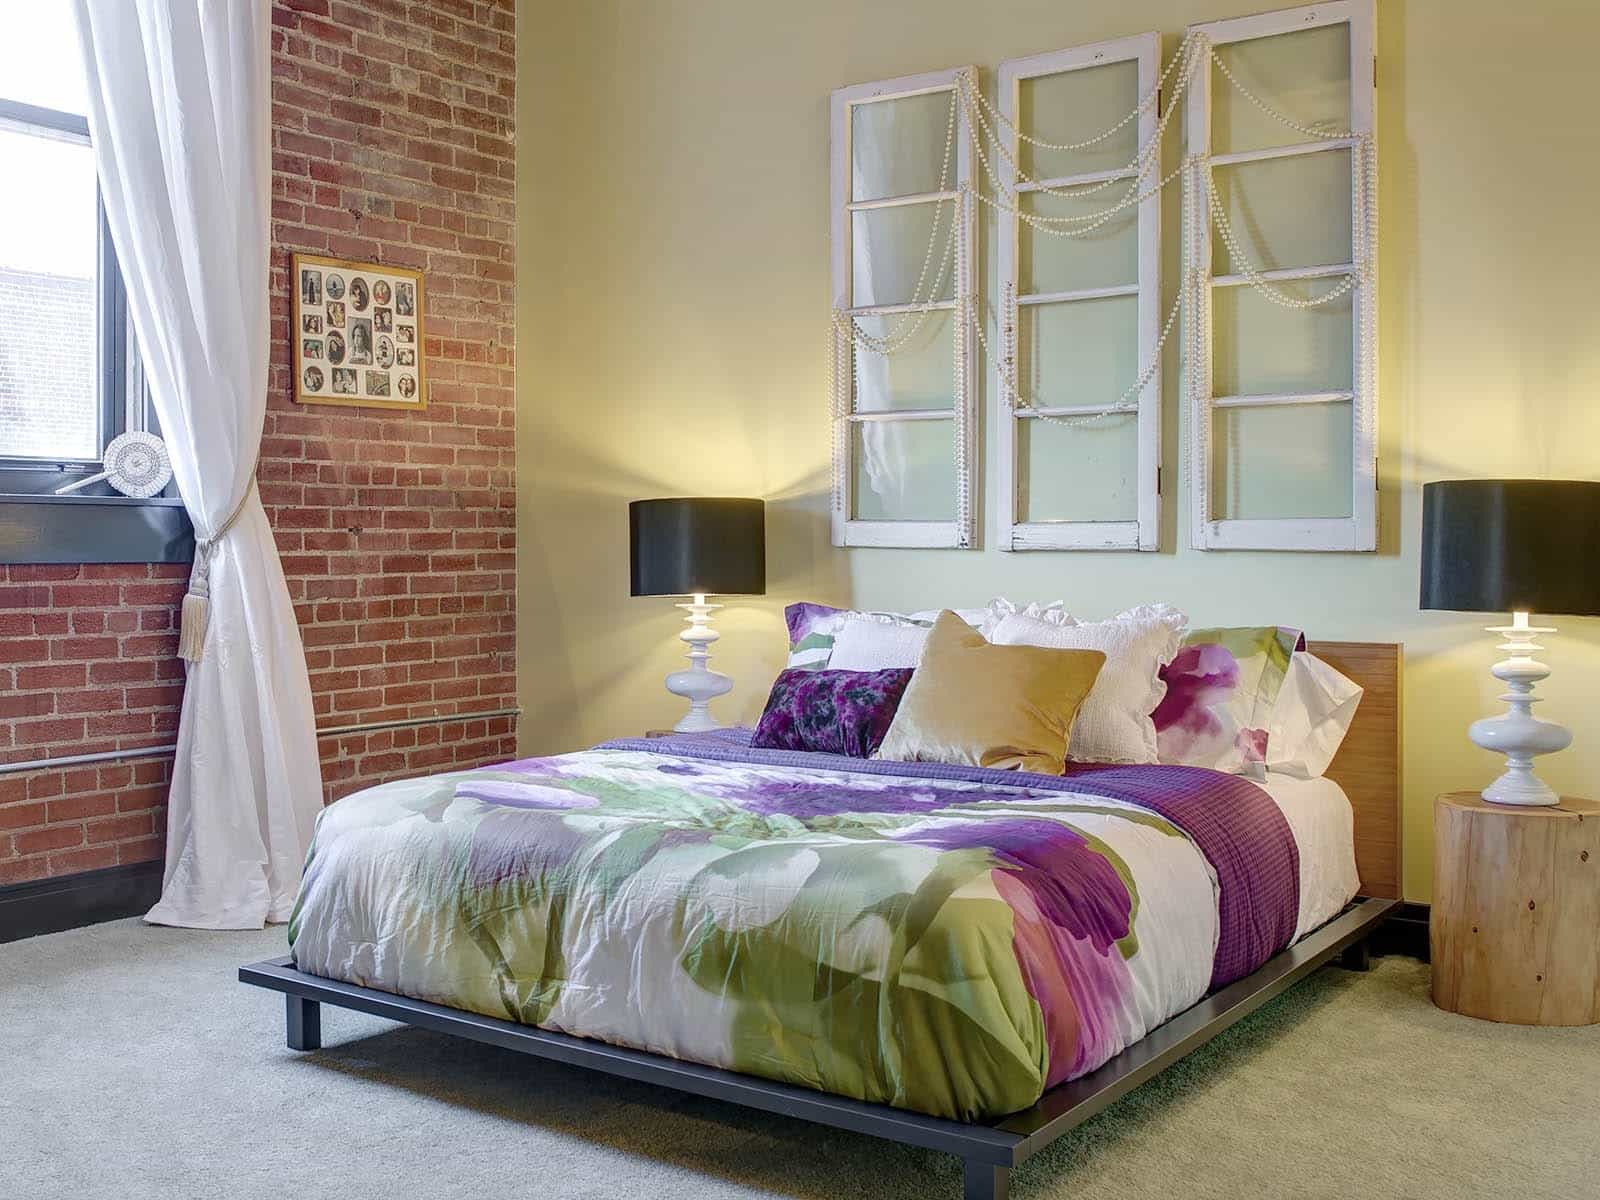 Bedroom With Platfrom Bed And Exposed Brick Walls (Image 2 of 30)